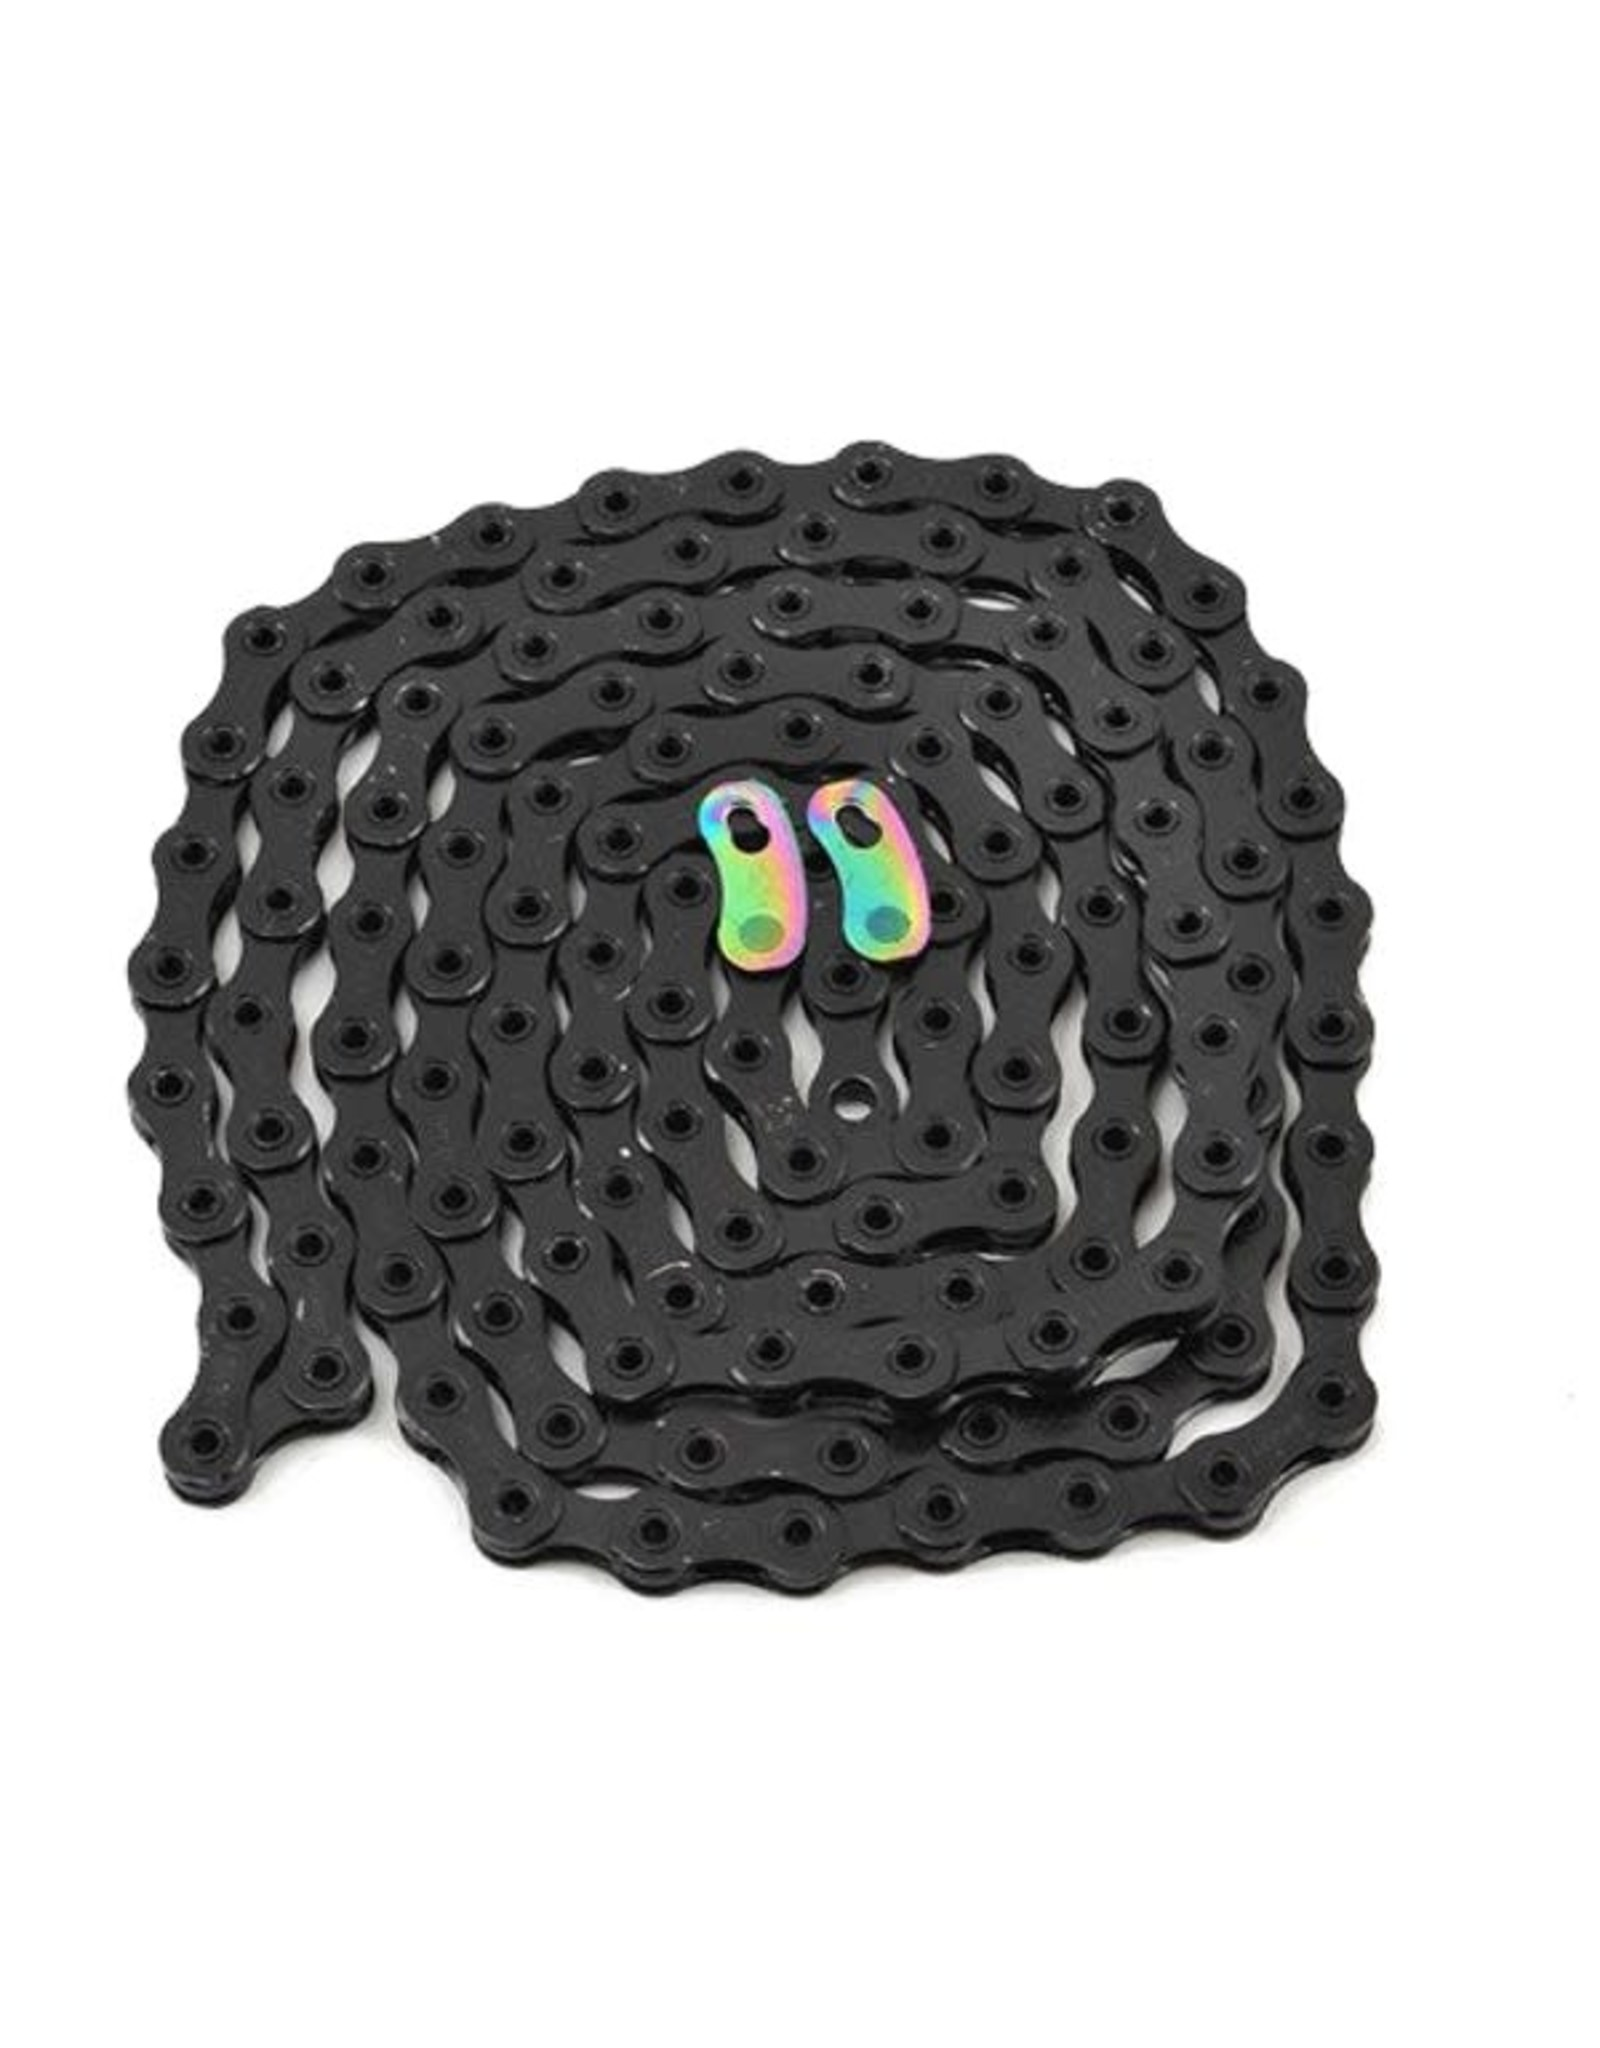 CHAINE Sram, PC XX1 Eagle, Chain, 12sp., 126 links, Black, With PowerLock